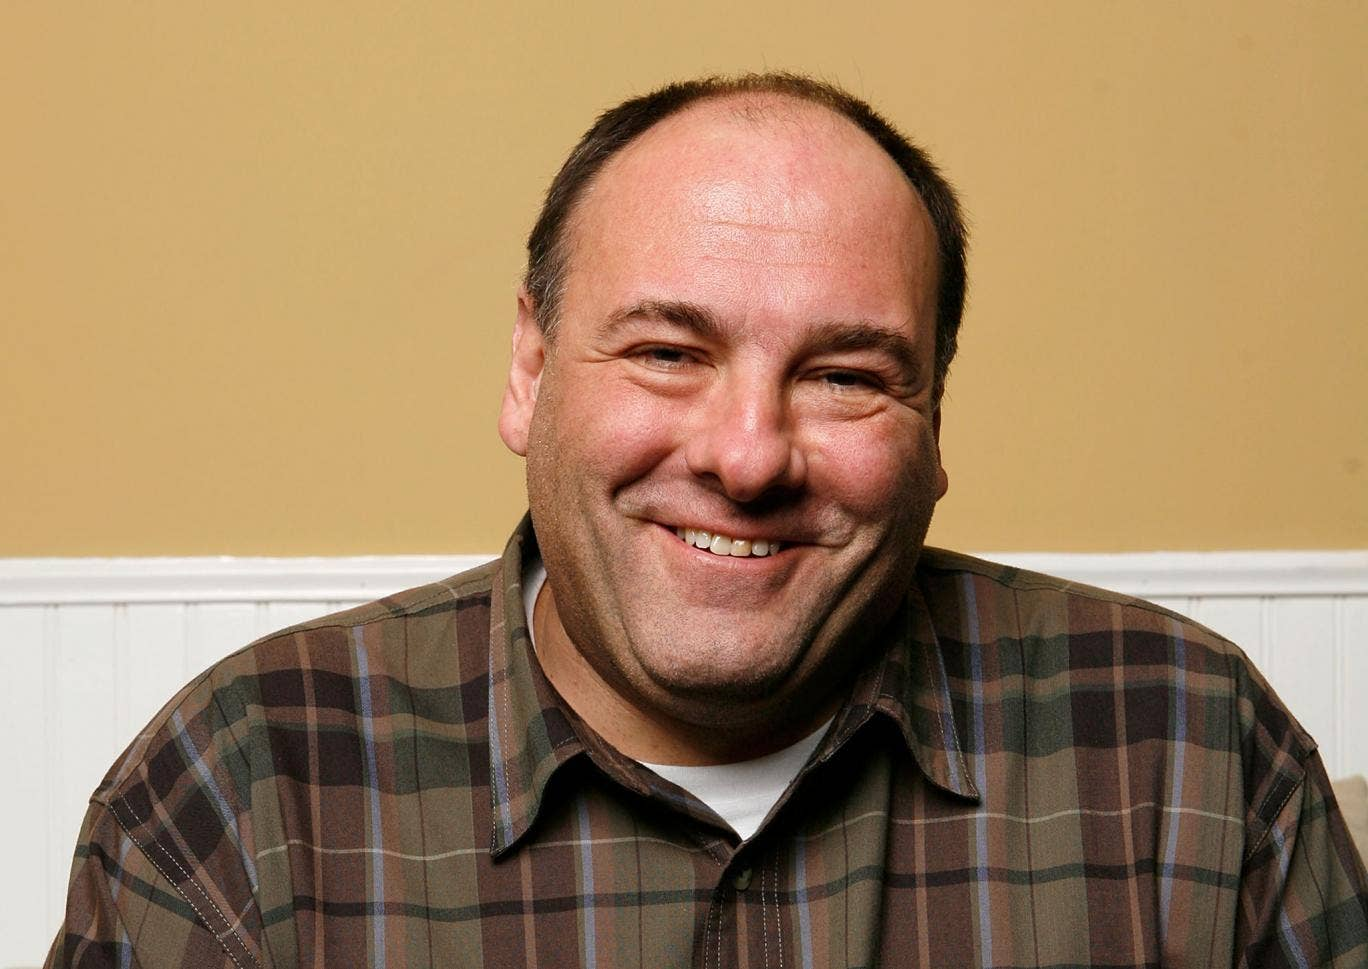 Sopranos actor James Gandolfini died in June